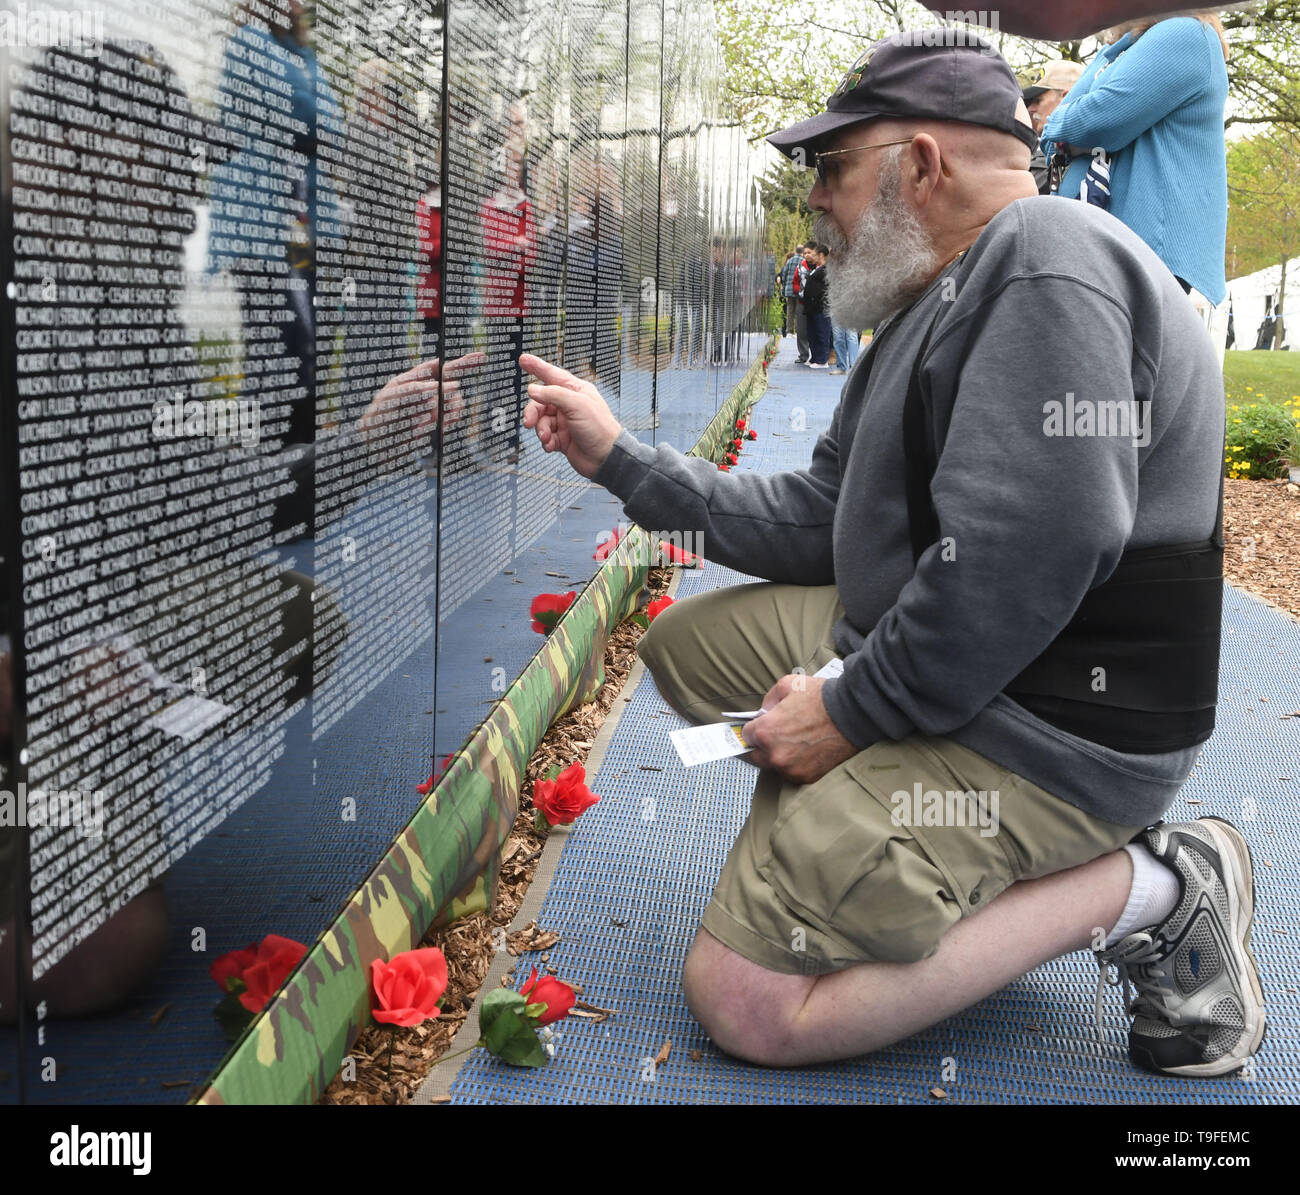 Racine, Wisconsin, USA. 18th May, 2019. Jack Berry looks for the name of Daniel Patrick, a high school classmate in the class of 1965, at the Moving Wall, a half-size replica of the Vietnam Veterans Memorial, in Racine, Wisconsin, Saturday May 18, 2019. He died on Berry's birthday. Forty-seven soldiers from Racine were killed during the war. The Moving Wall has been touring the United States for more than 30 years. Credit: Mark Hertzberg/ZUMA Wire/Alamy Live News - Stock Image